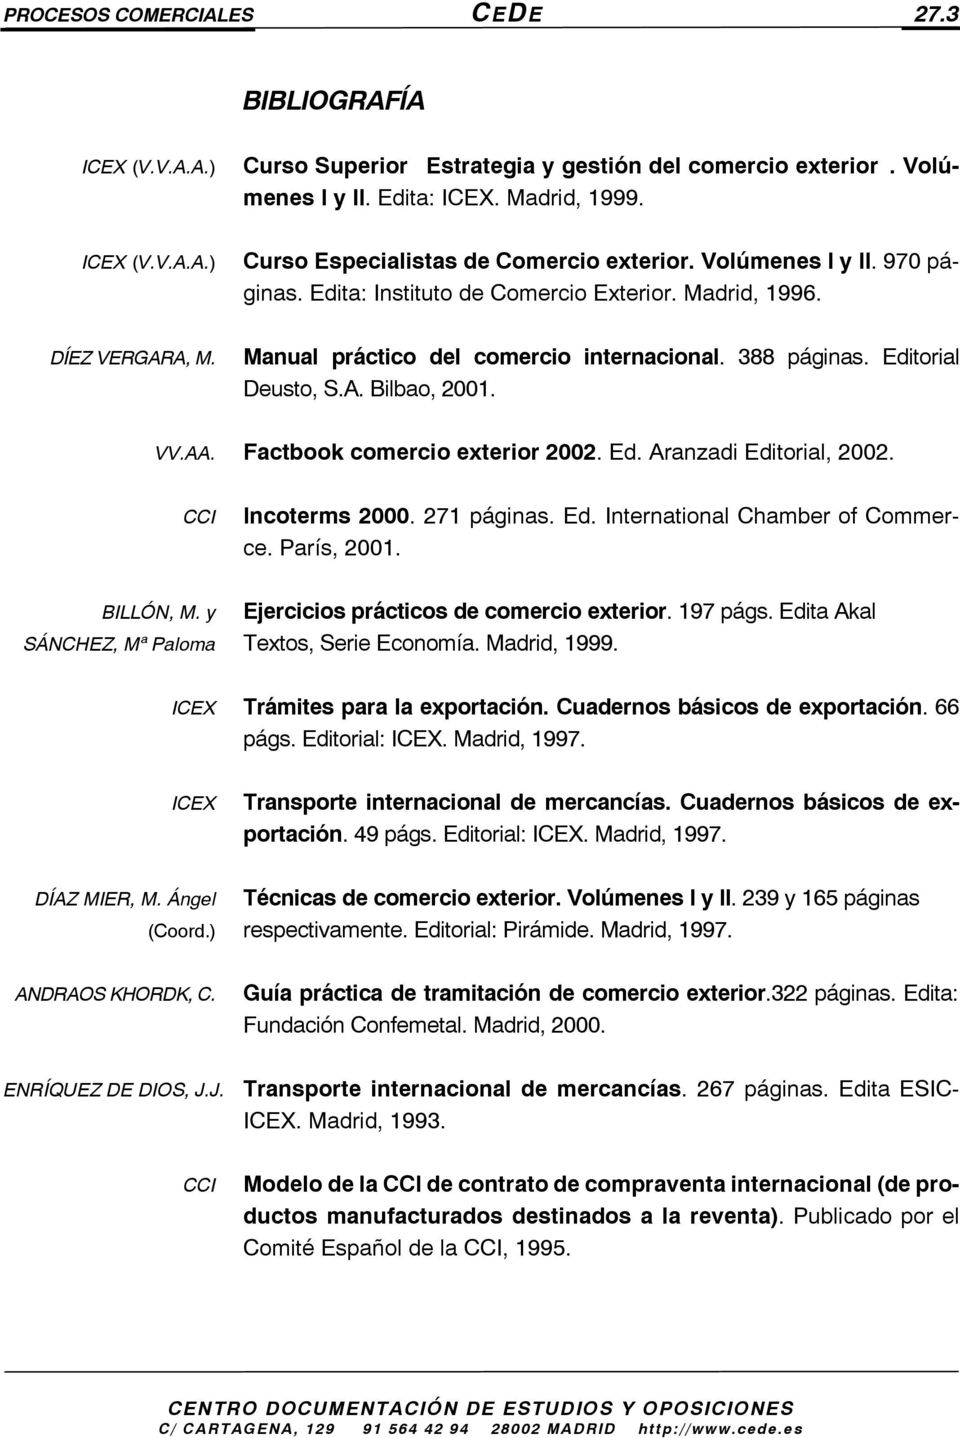 AA. Factbook comercio exterior 2002. Ed. Aranzadi Editorial, 2002. CCI Incoterms 2000. 271 páginas. Ed. International Chamber of Commerce. París, 2001. BILLÓN, M.